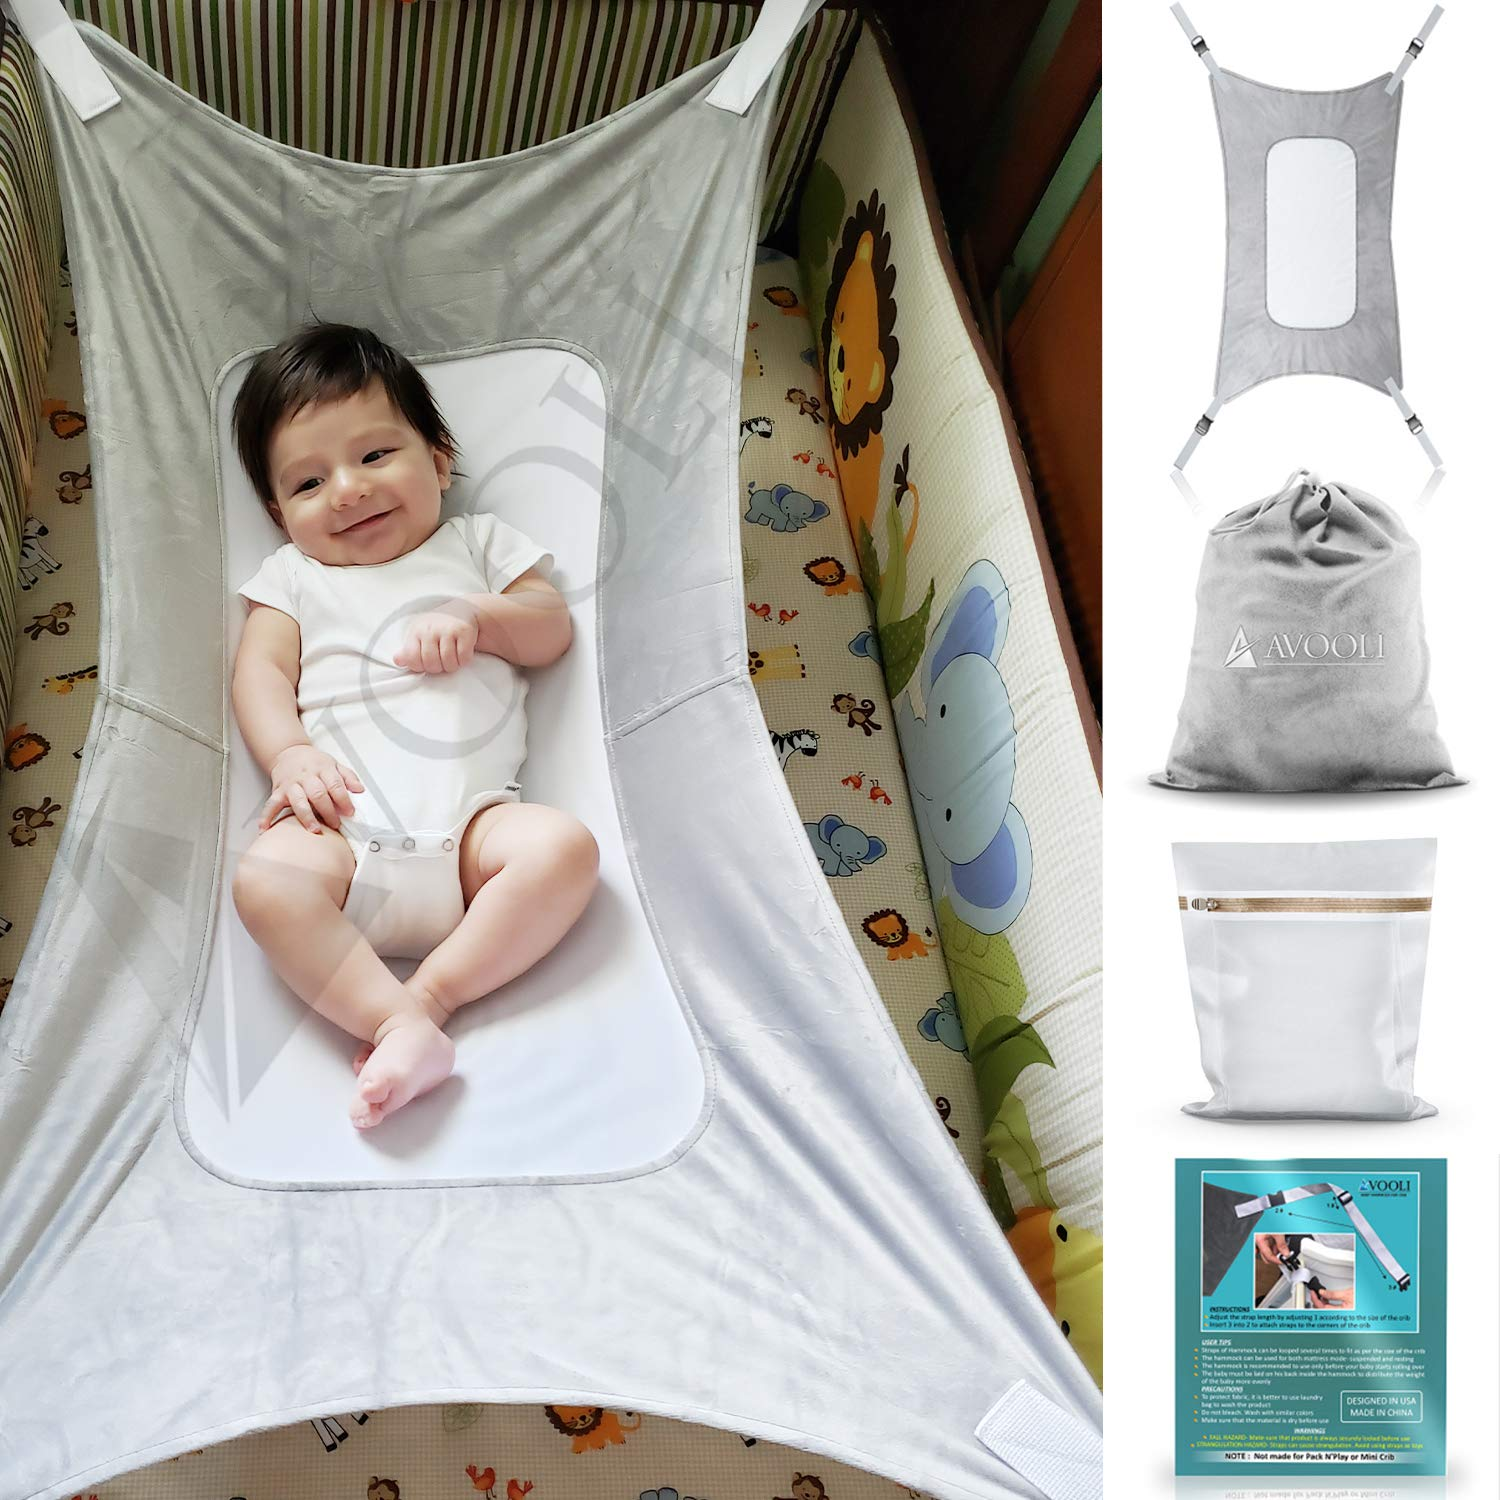 Baby Hammock for Crib with Gift for Newborn Infant by Avooli